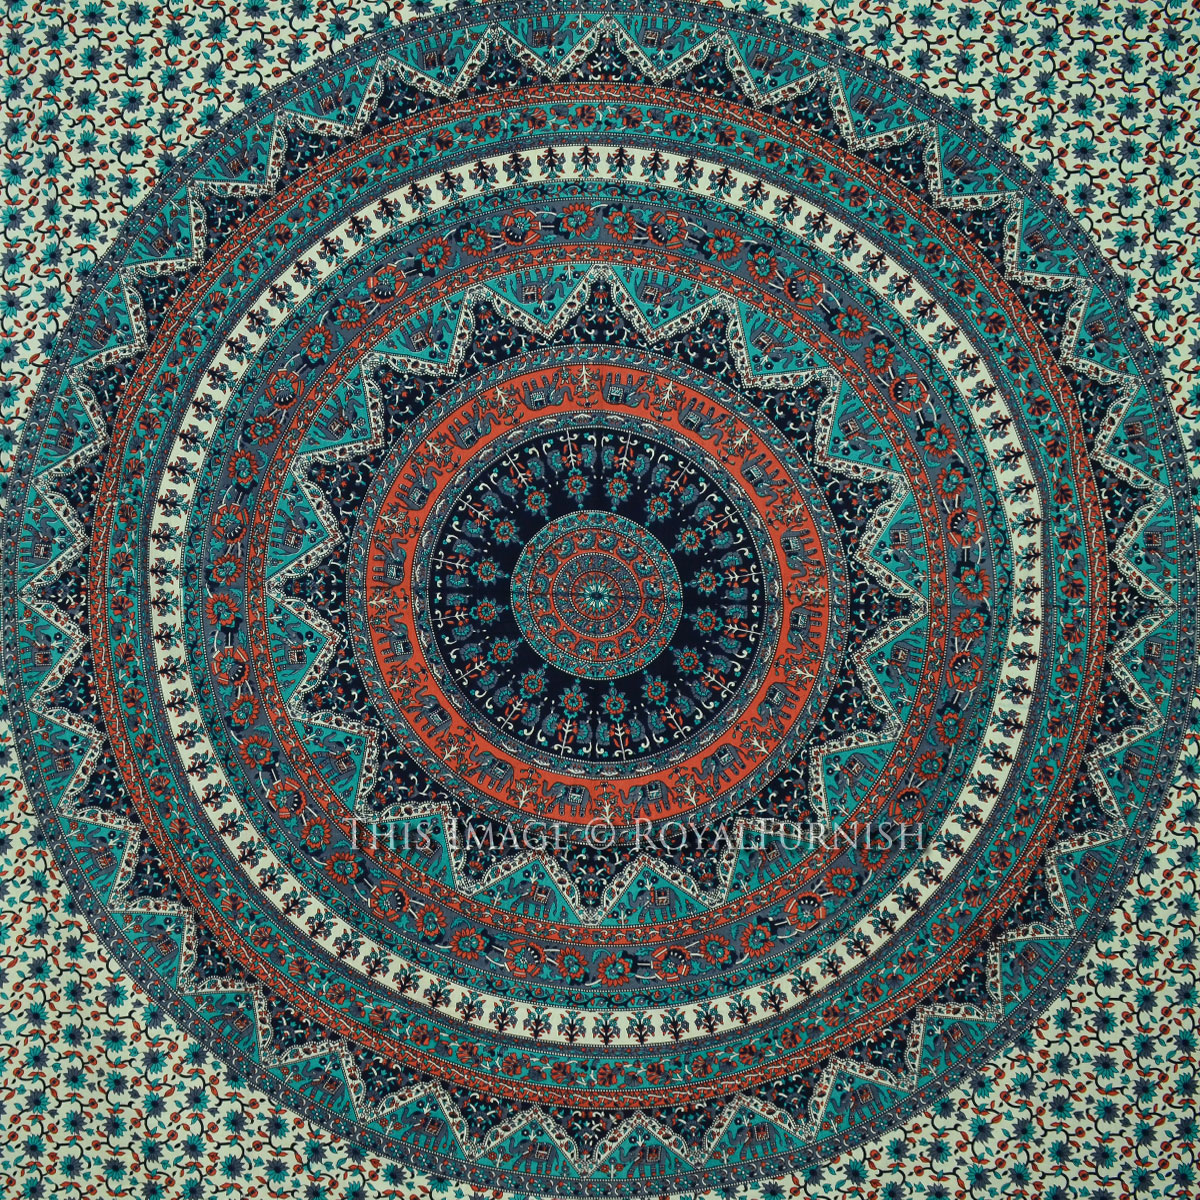 Queen Gray Multicolor Indian Psychedelic Bohemian Tapestry Wall Hanging